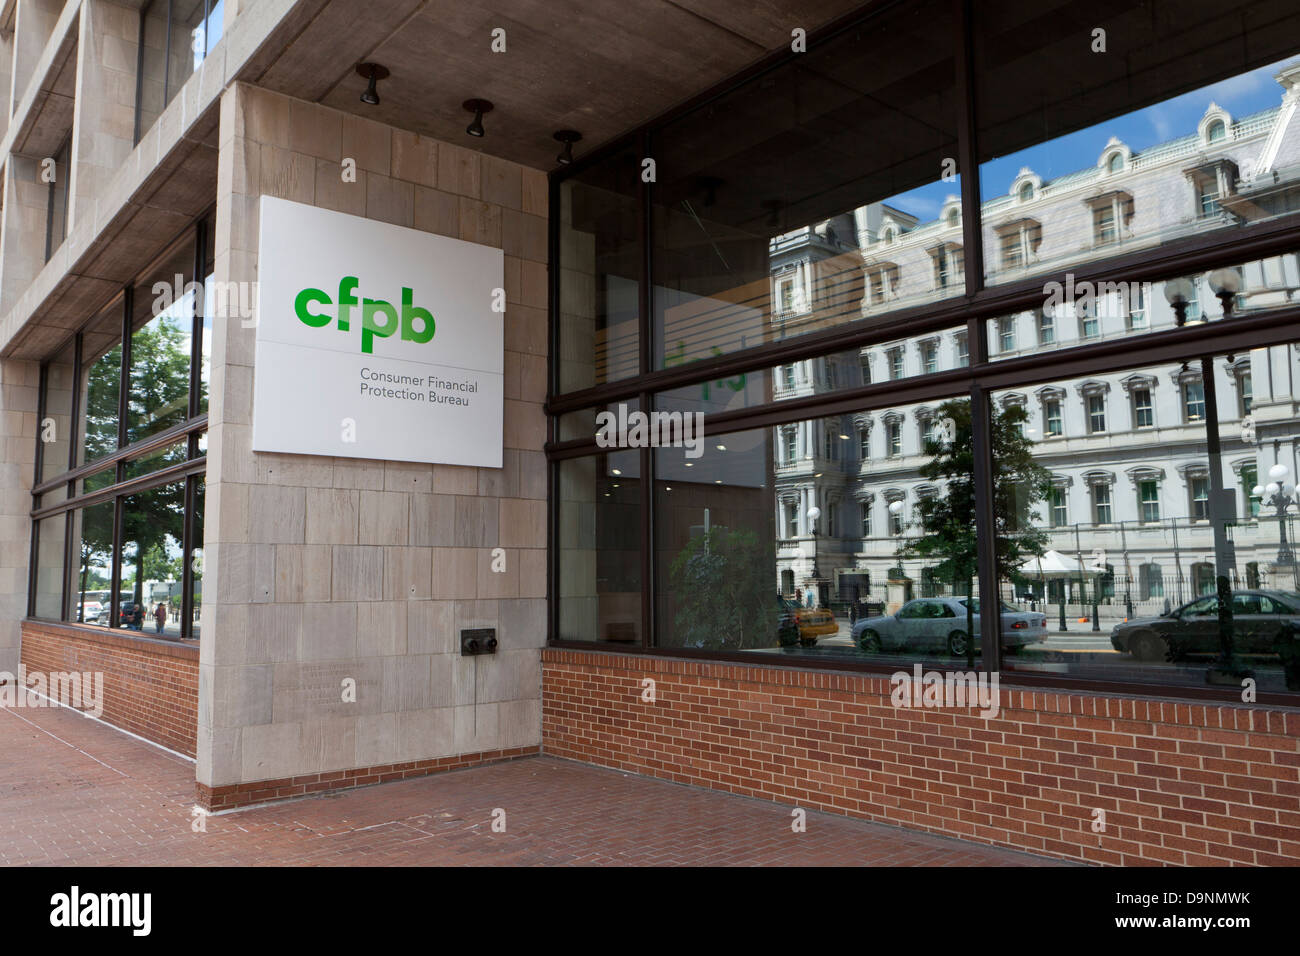 Consumer Financial Protection Bureau headquarters building, Washington DC - Stock Image